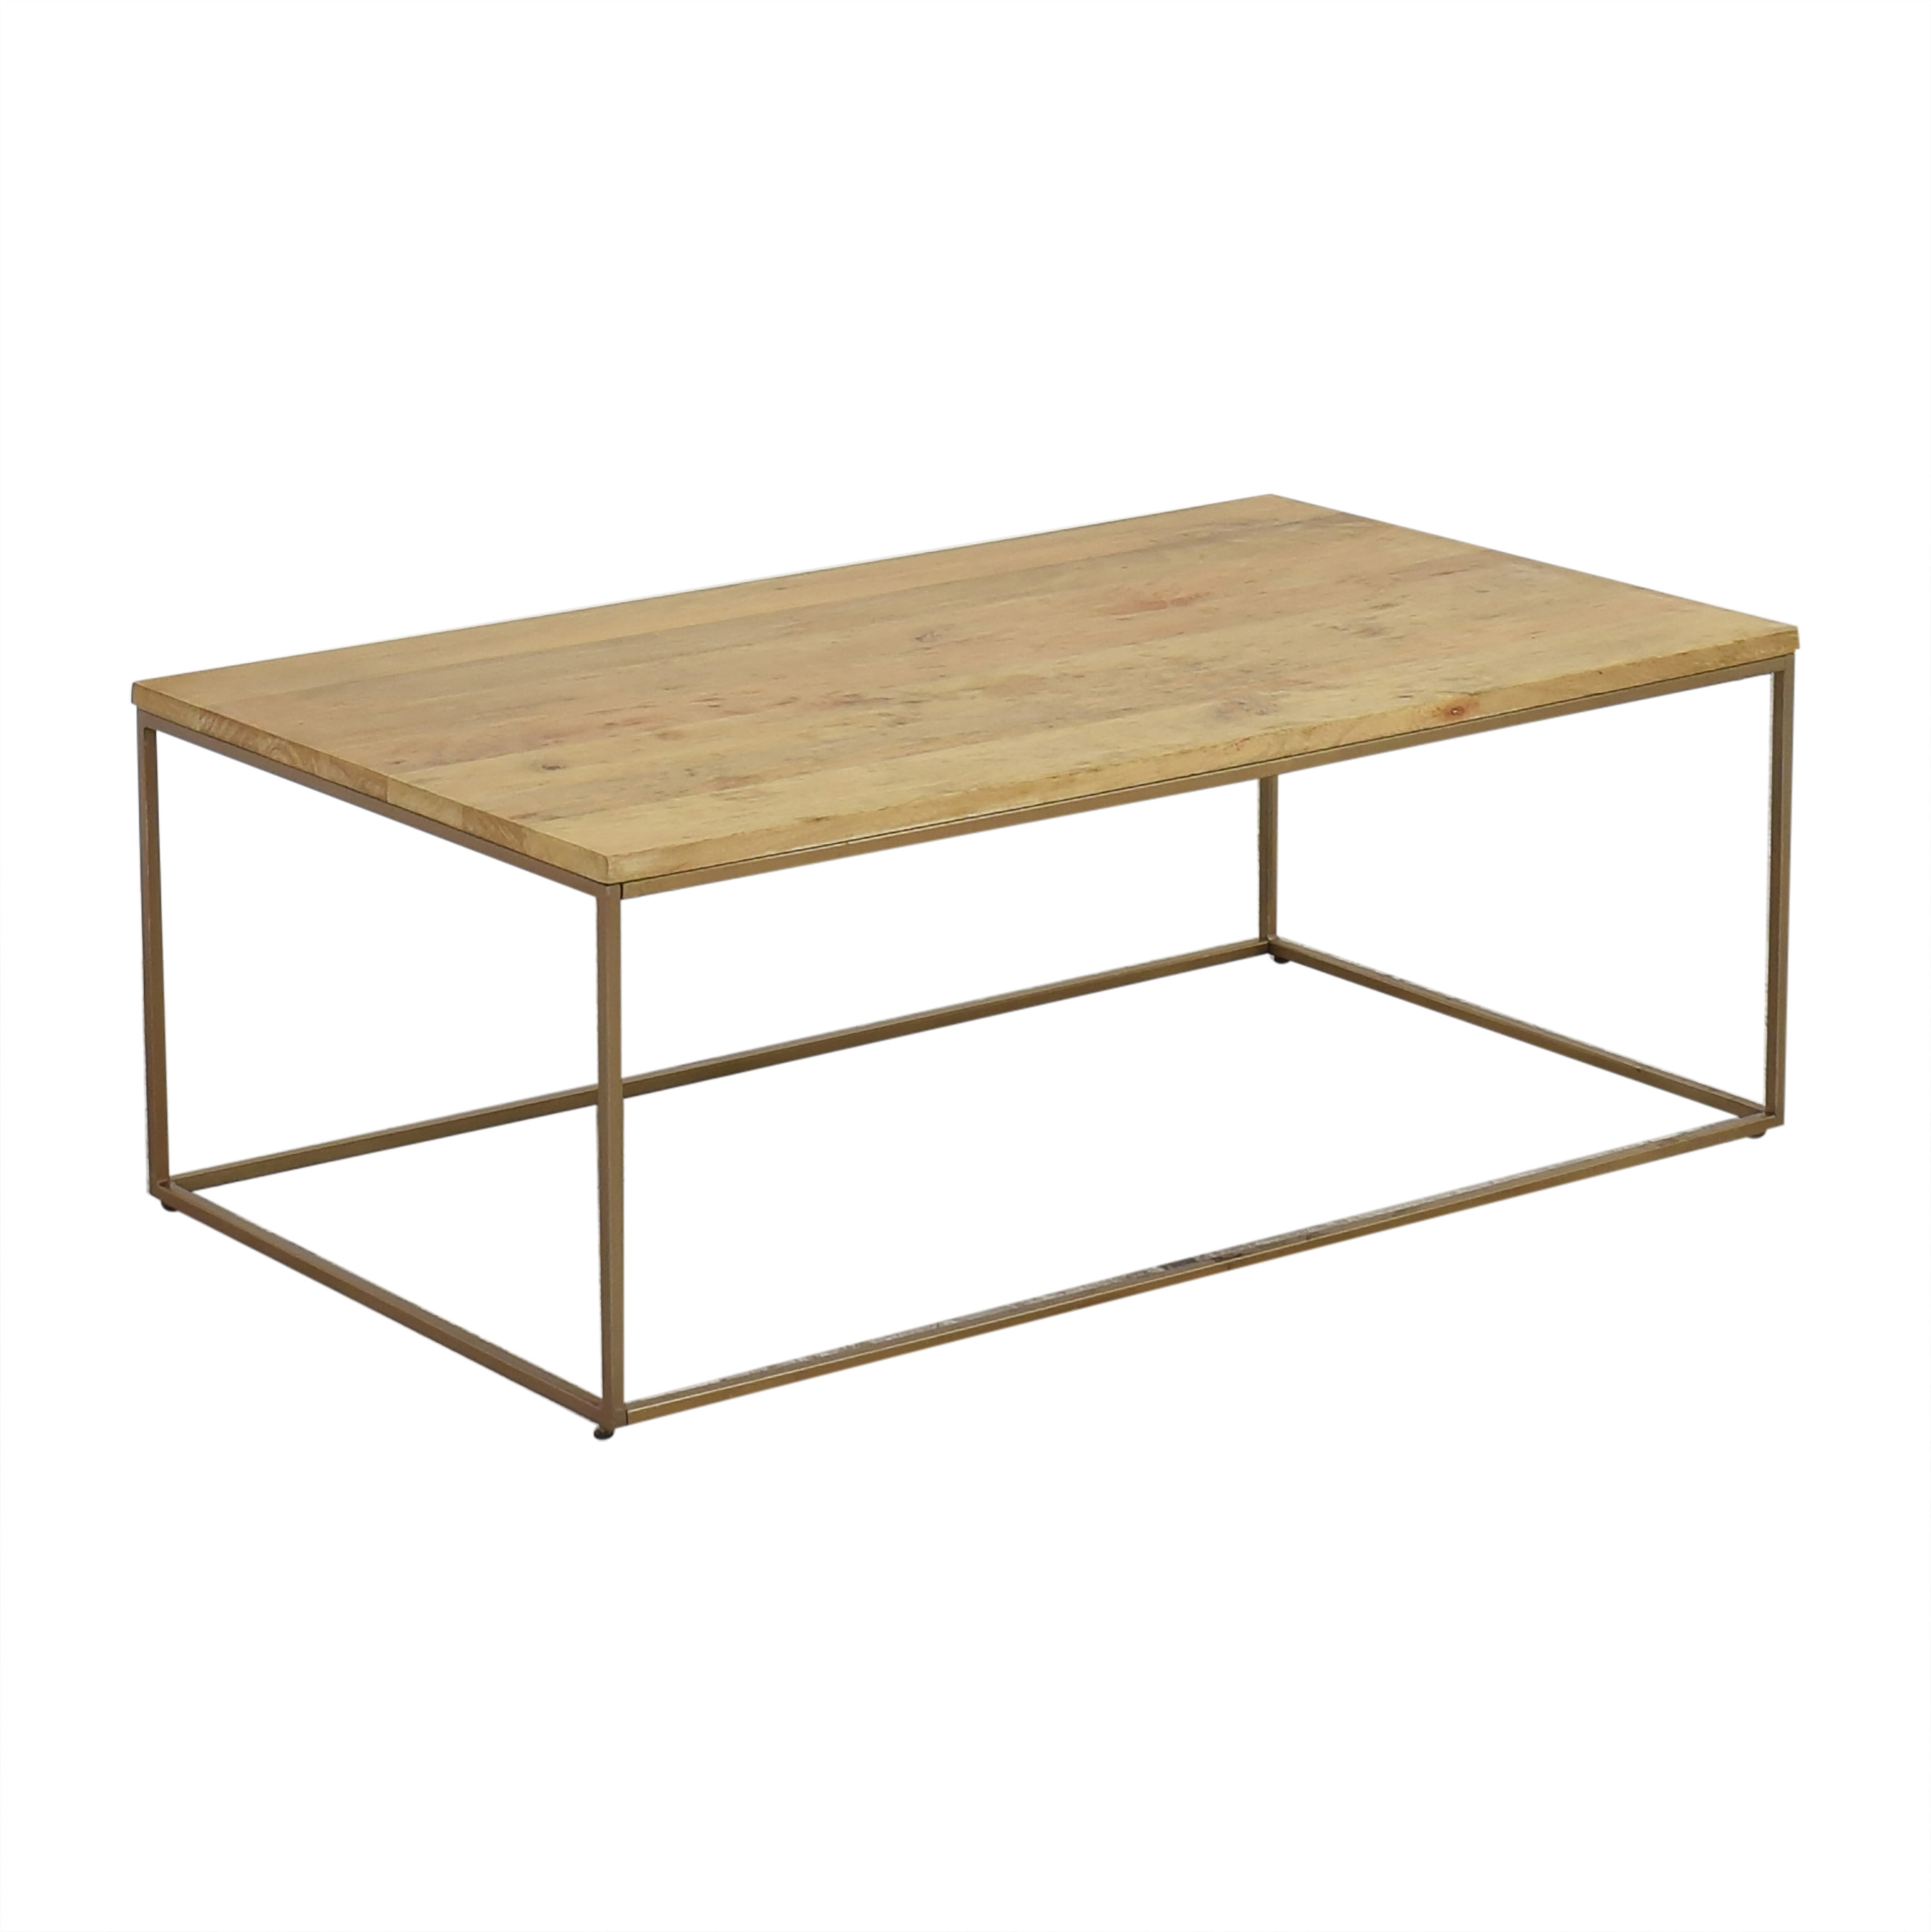 West Elm West Elm Streamline Coffee Table ct